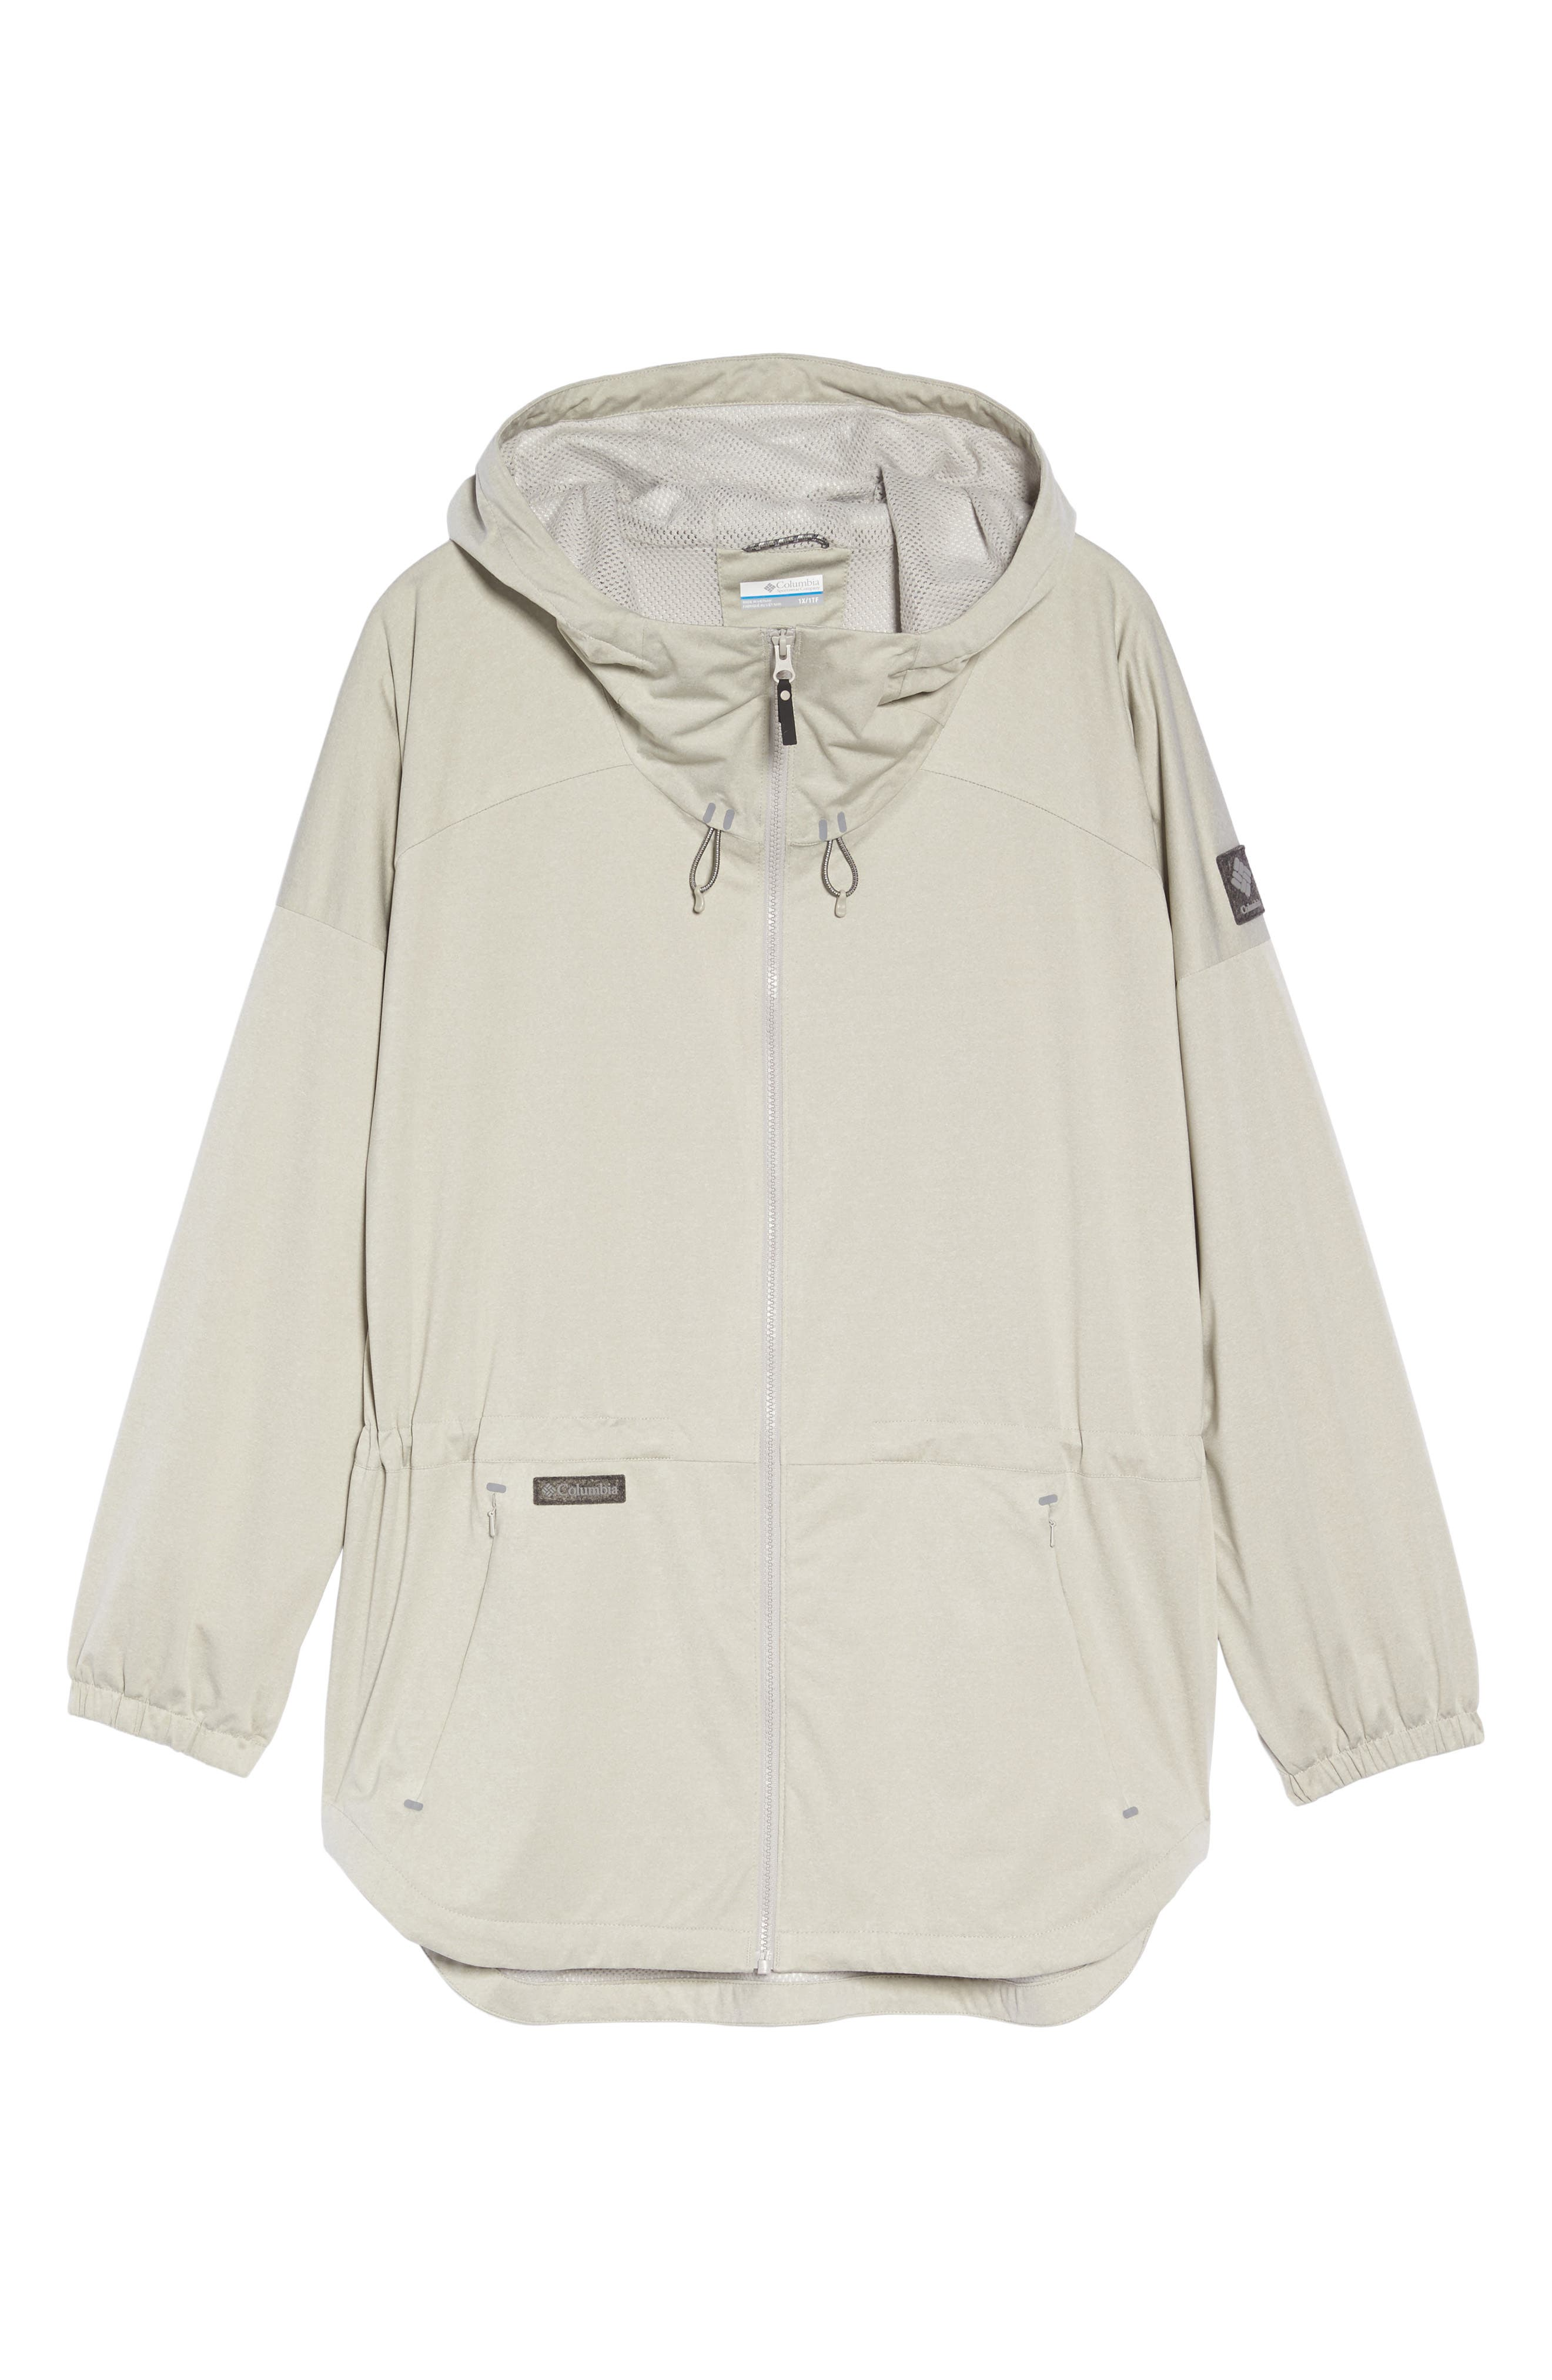 Northbounder Waterproof Hooded Jacket,                             Alternate thumbnail 6, color,                             Flint Grey Heather